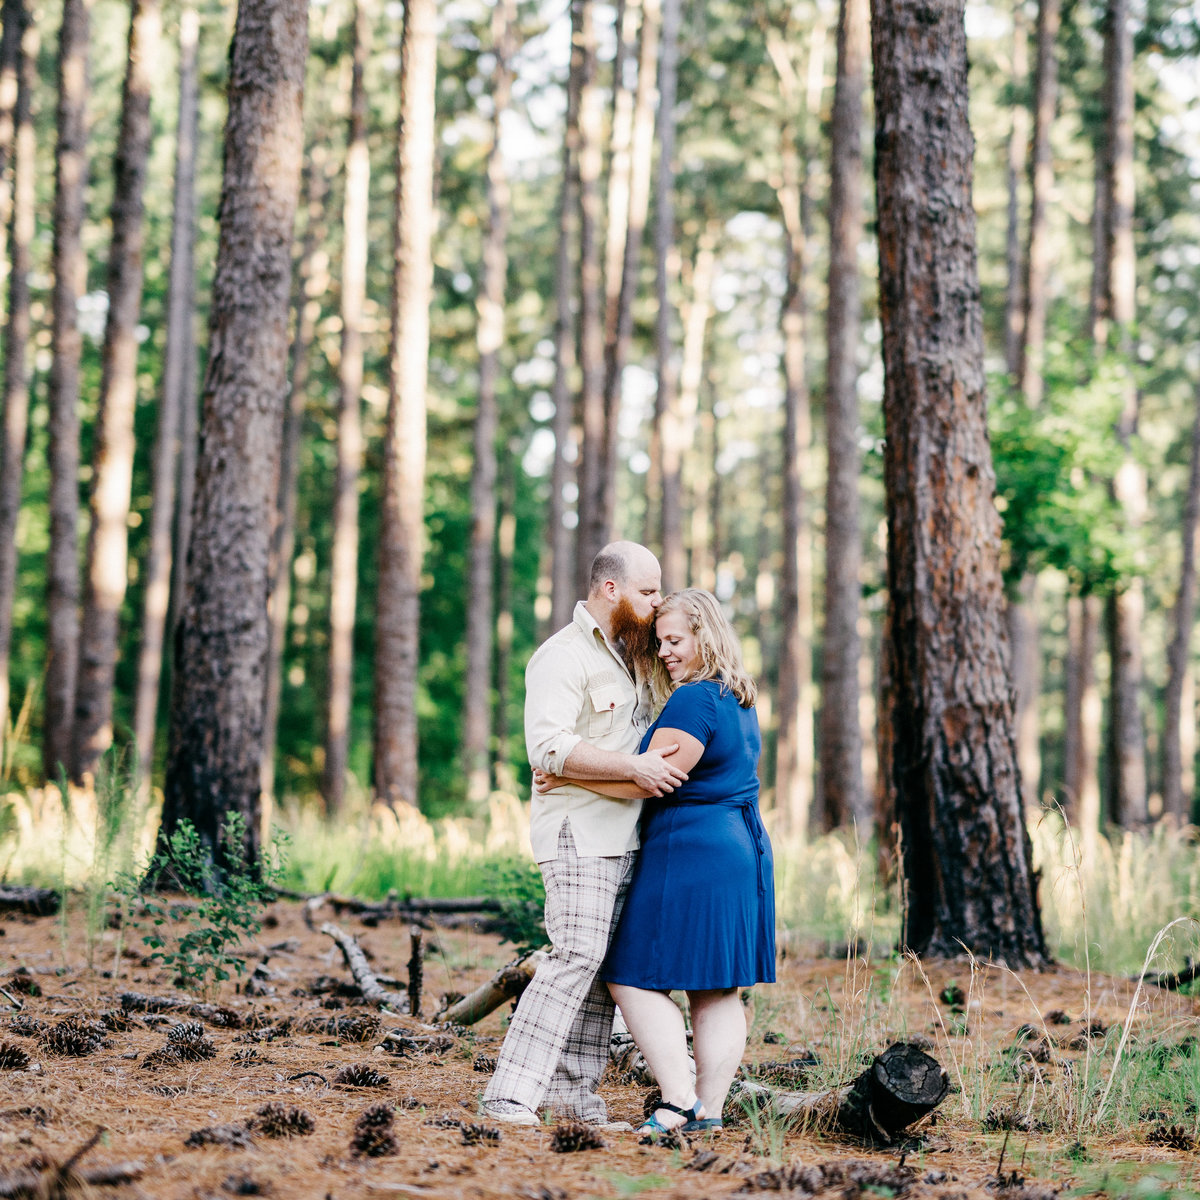 Kathy+Jonah_DukeForestPortraitSession-16